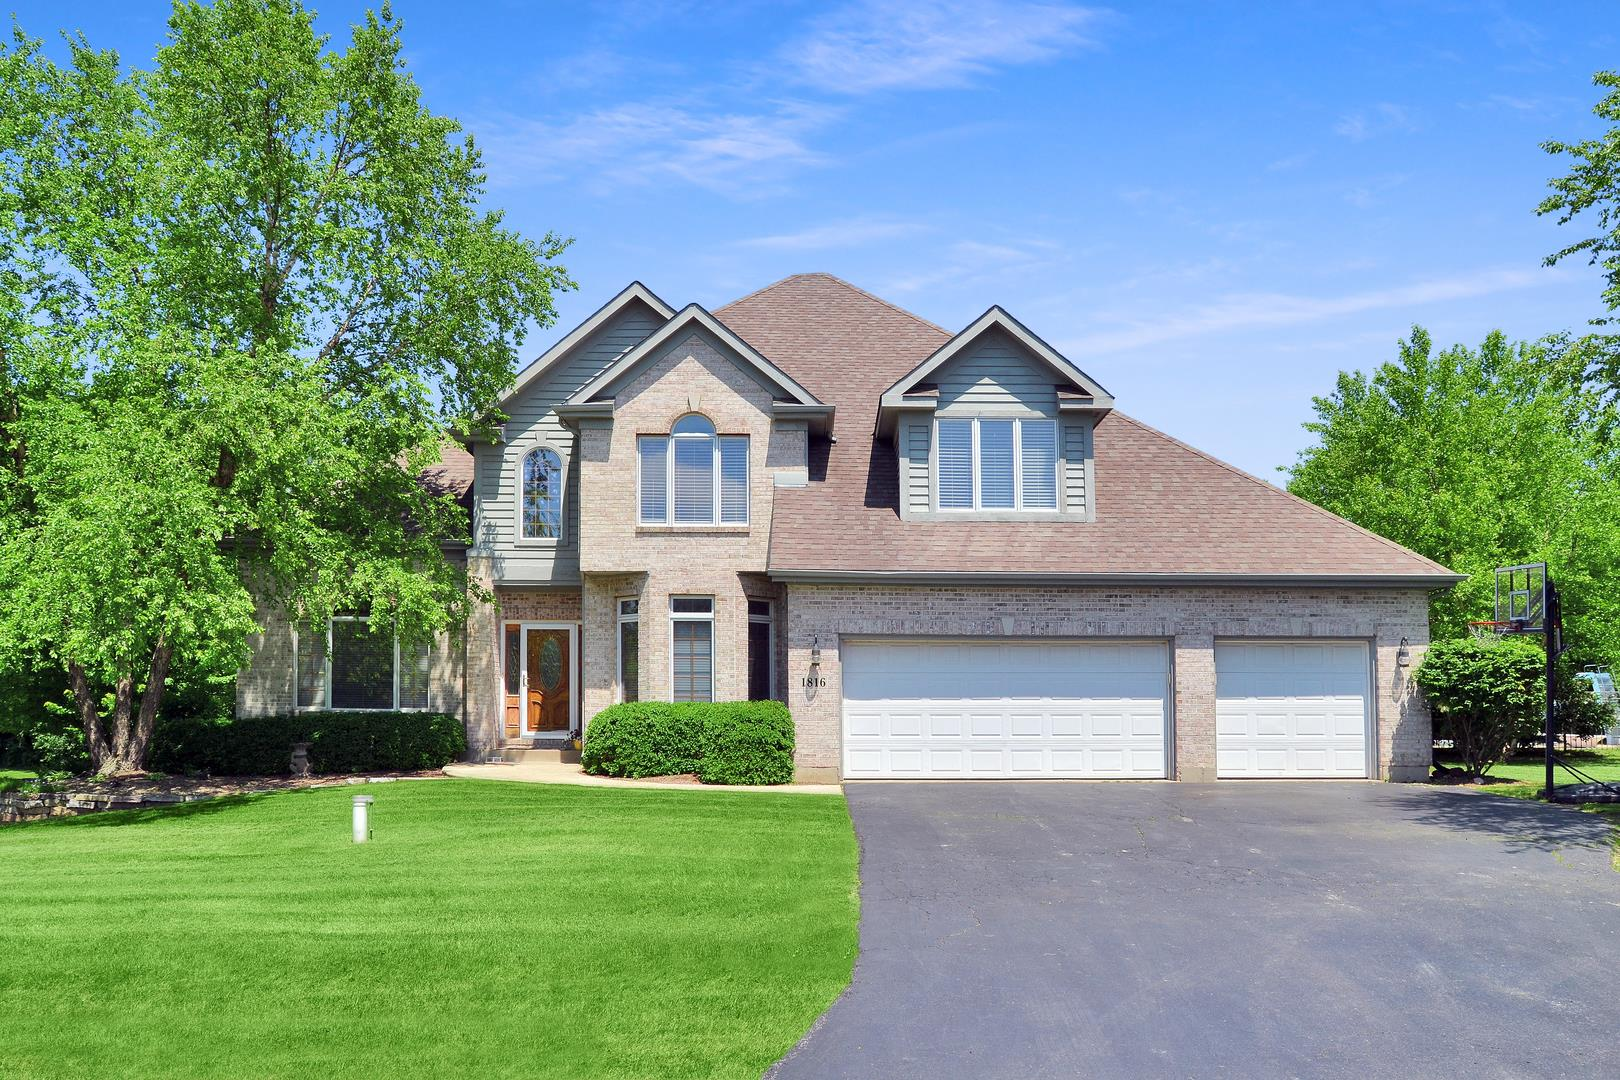 1816 Anthony Lane, McHenry, IL 60051 - #: 10415031